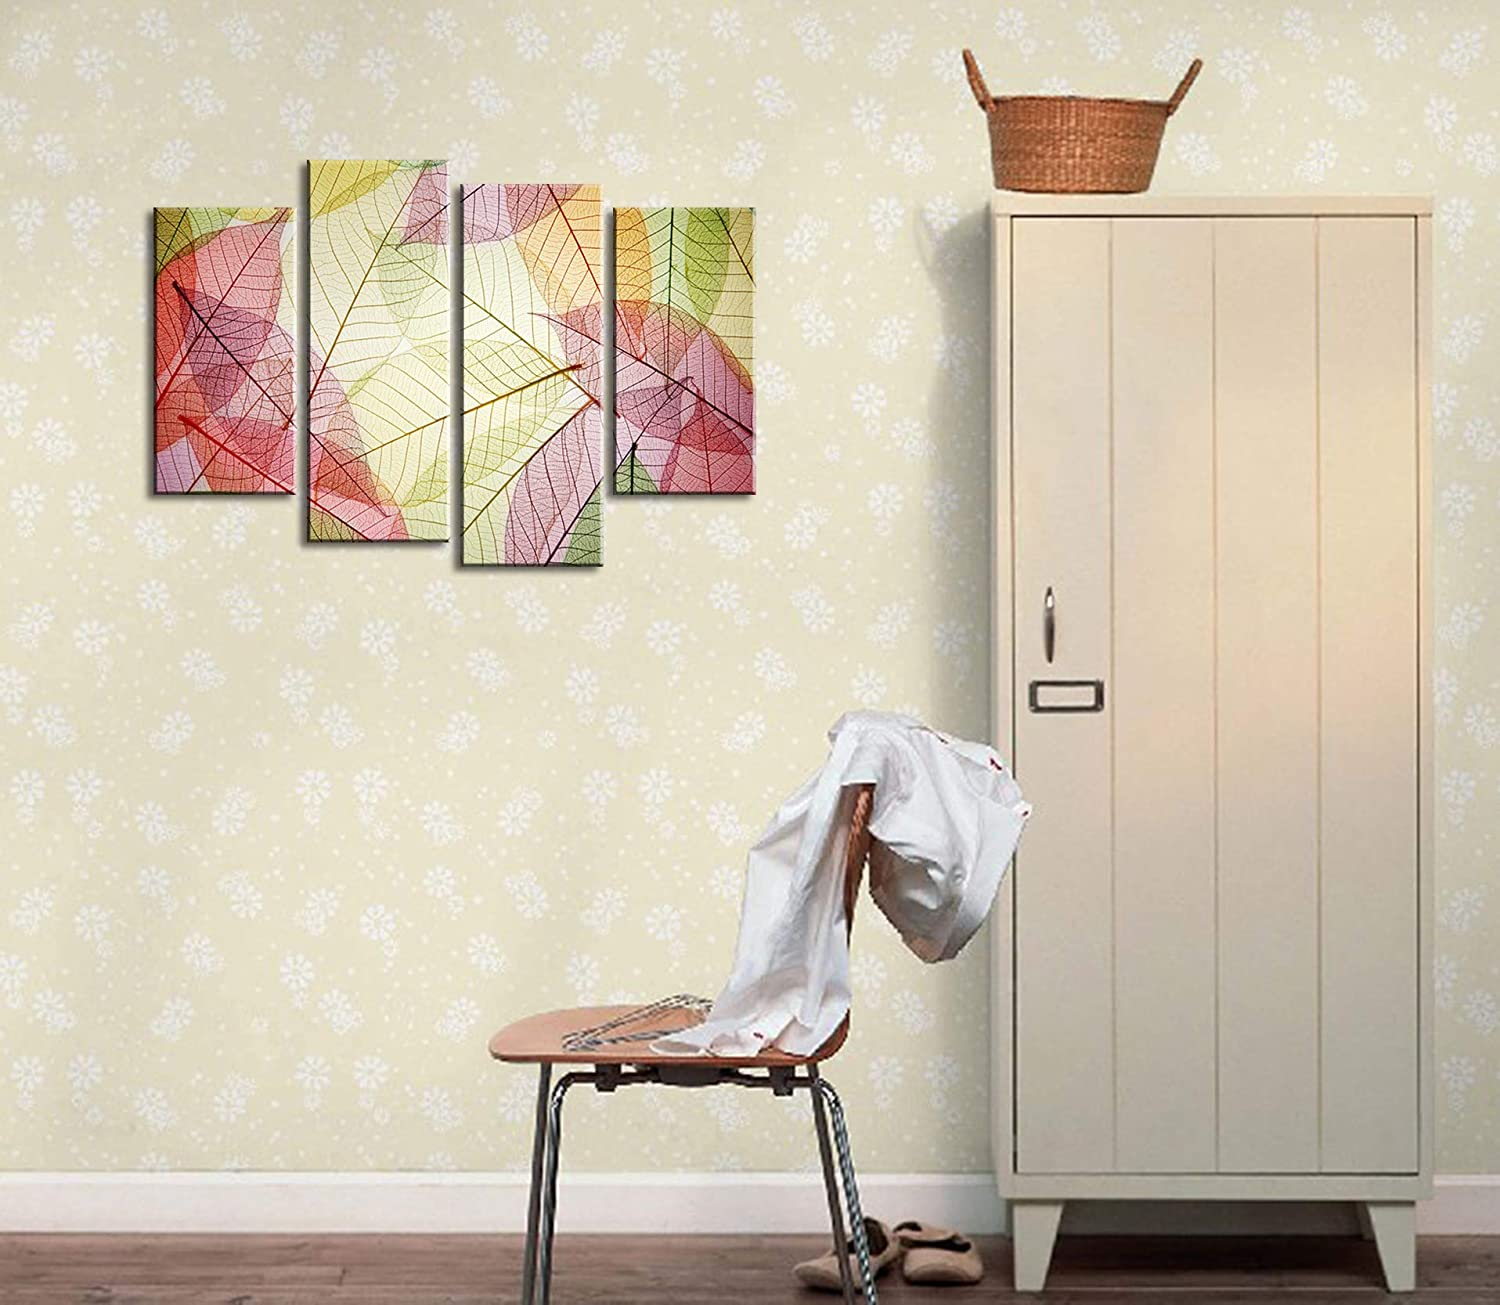 Natural art Park Landscape Abstract Tree Posters and Prints with Wooden Frame for Wall Decoration 4 Panels